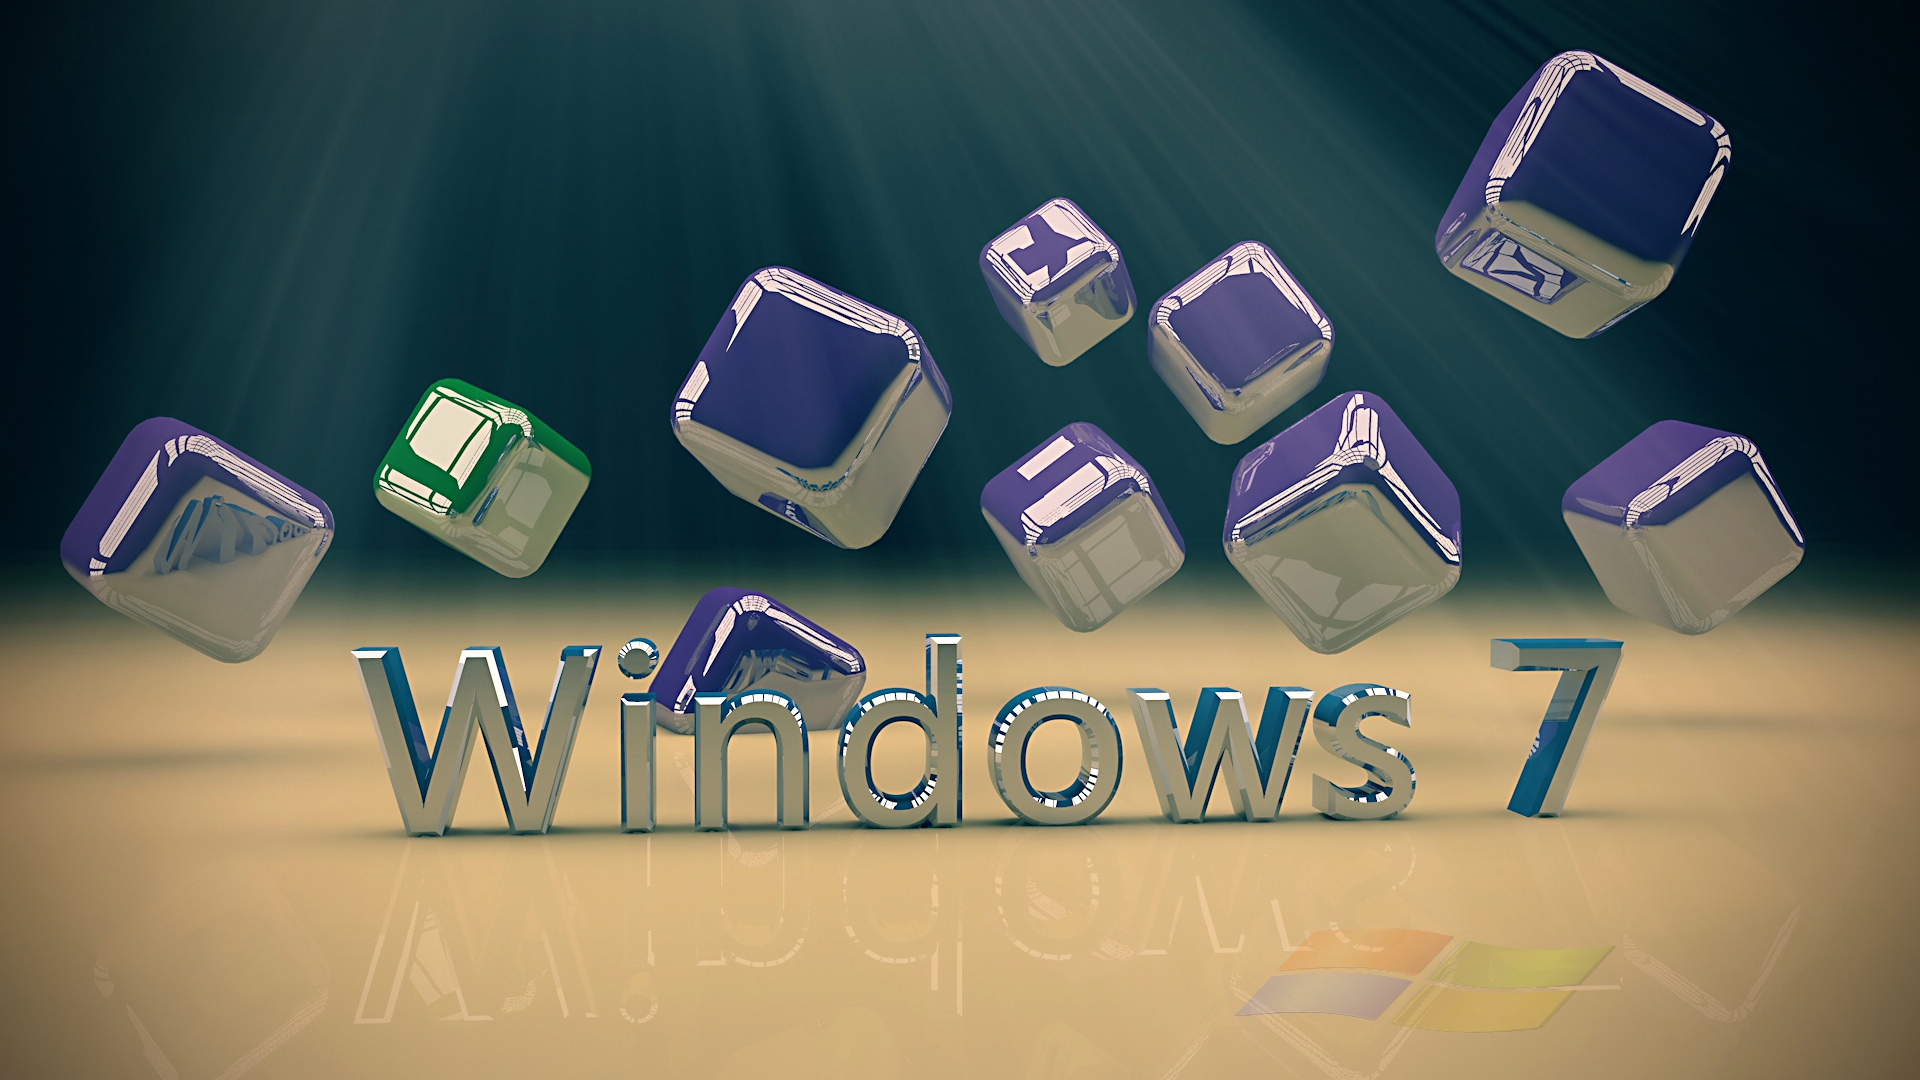 Windows 7 background image not showing - Software Photo Divi Background Image Not Showing Gwx